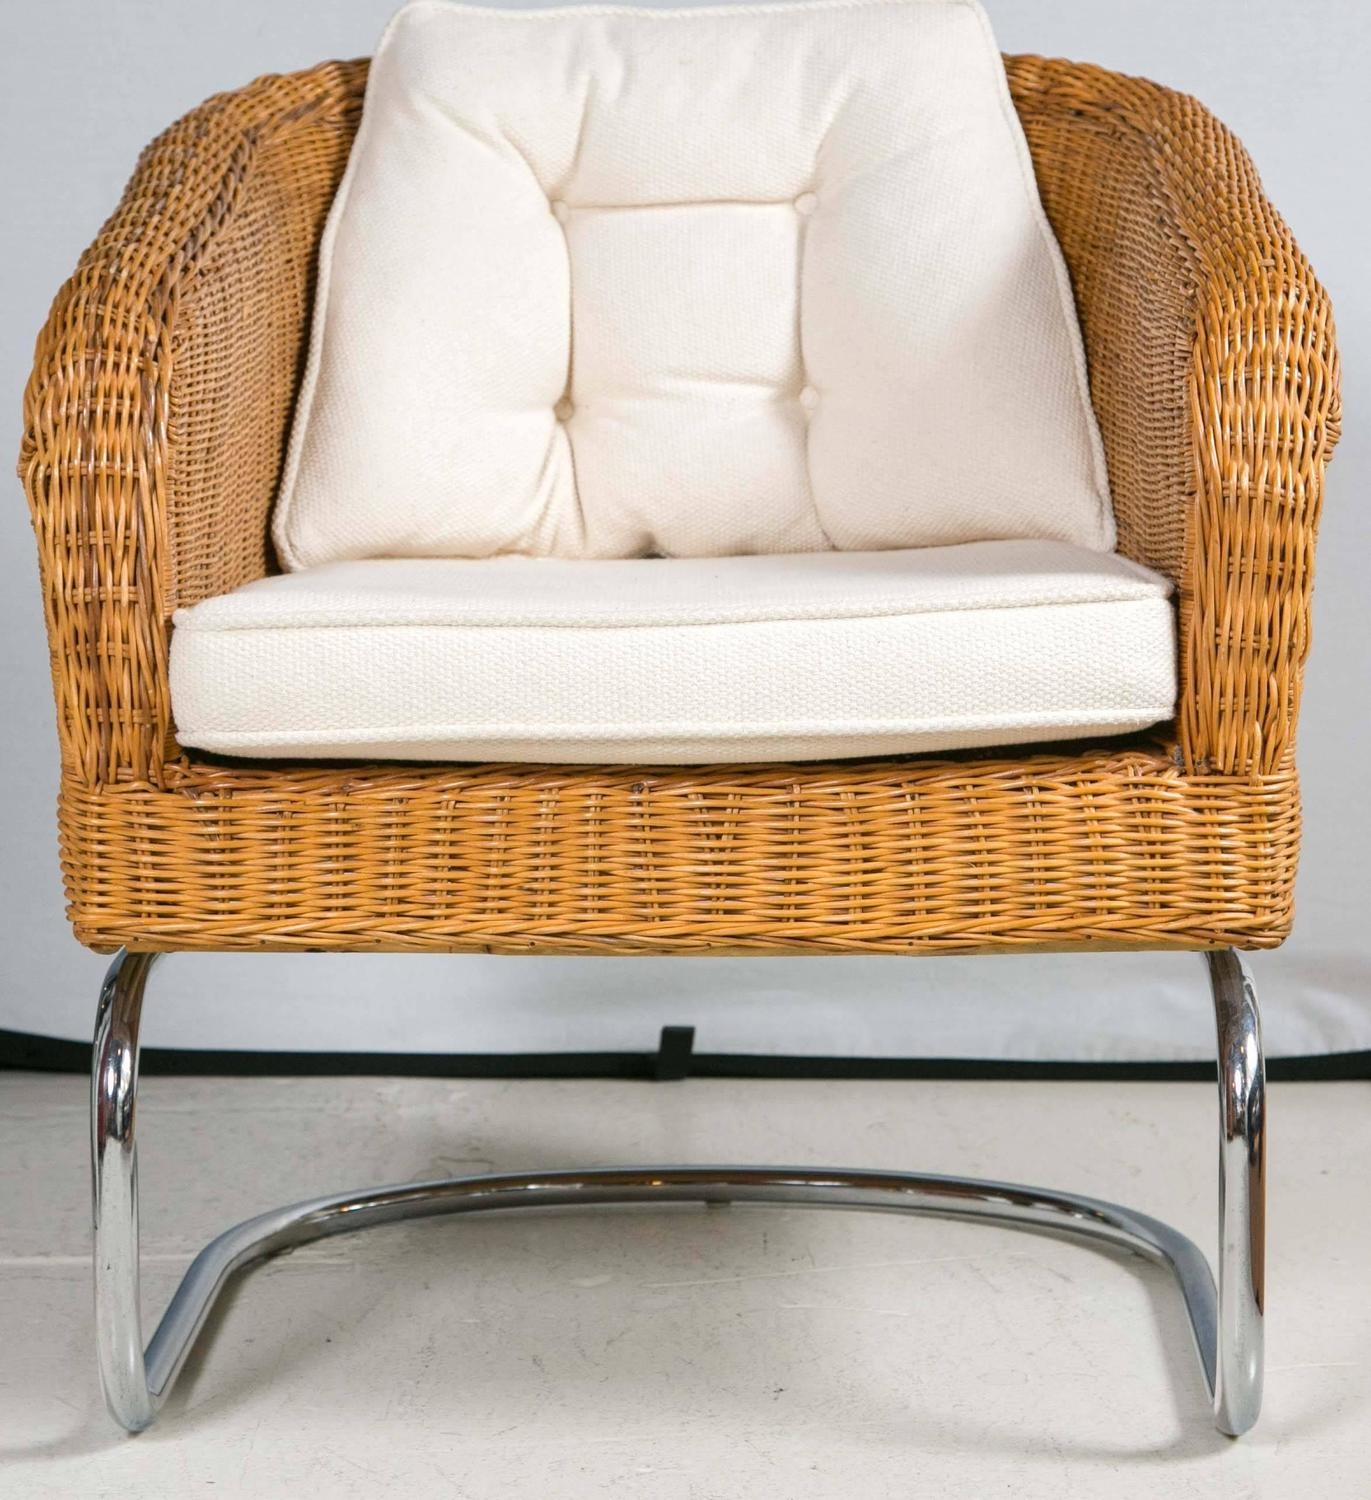 mid century cane barrel chair blue print wicker and chrome chairs at 1stdibs